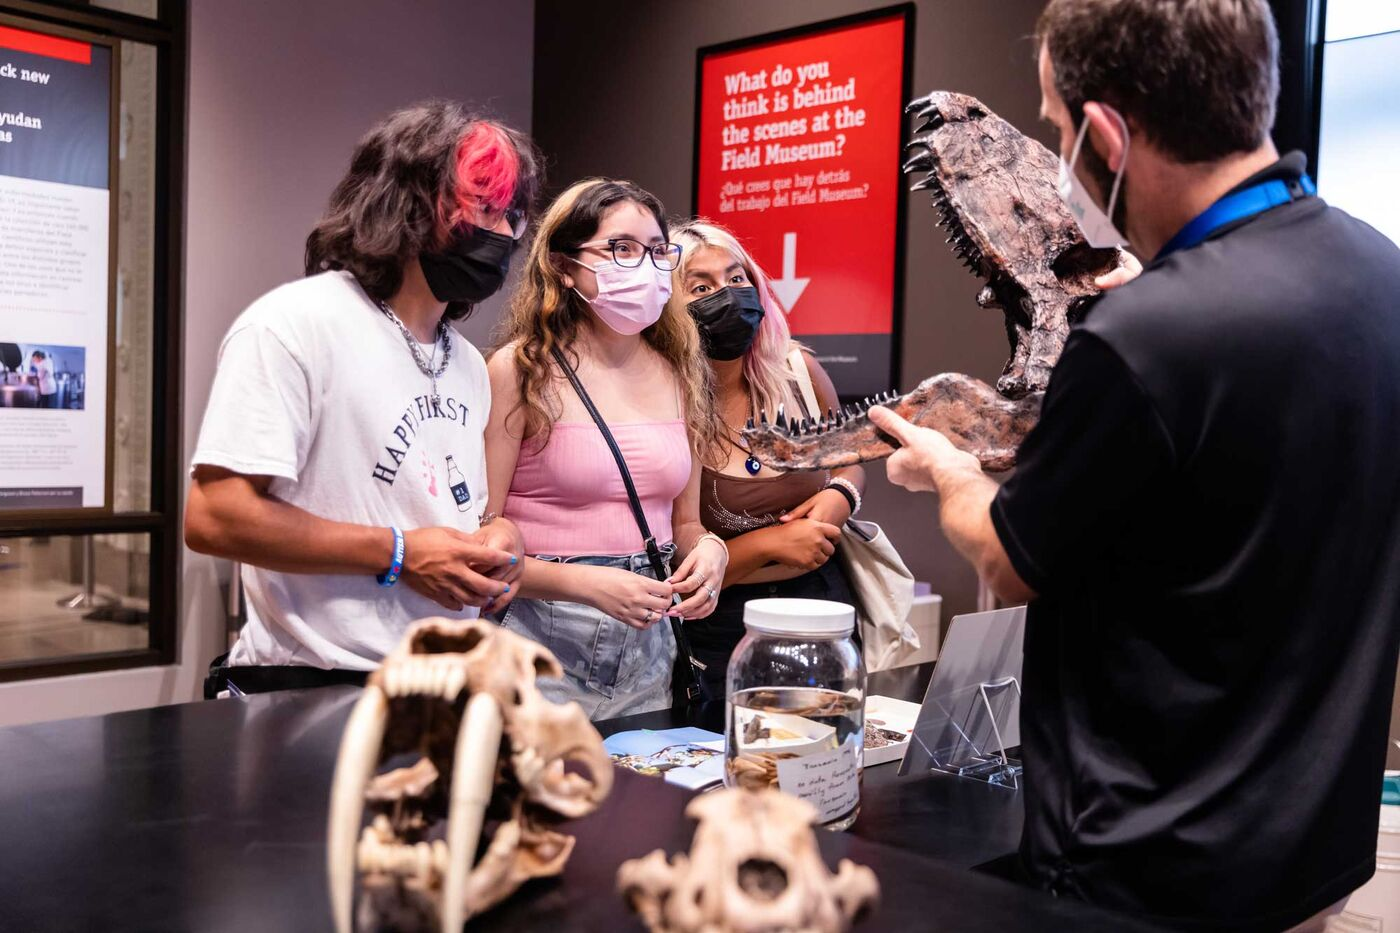 A Field Museum educator holds open a dimetrodon skull to show three visitors. Other skulls and a wet specimen in a jar sit on the table.